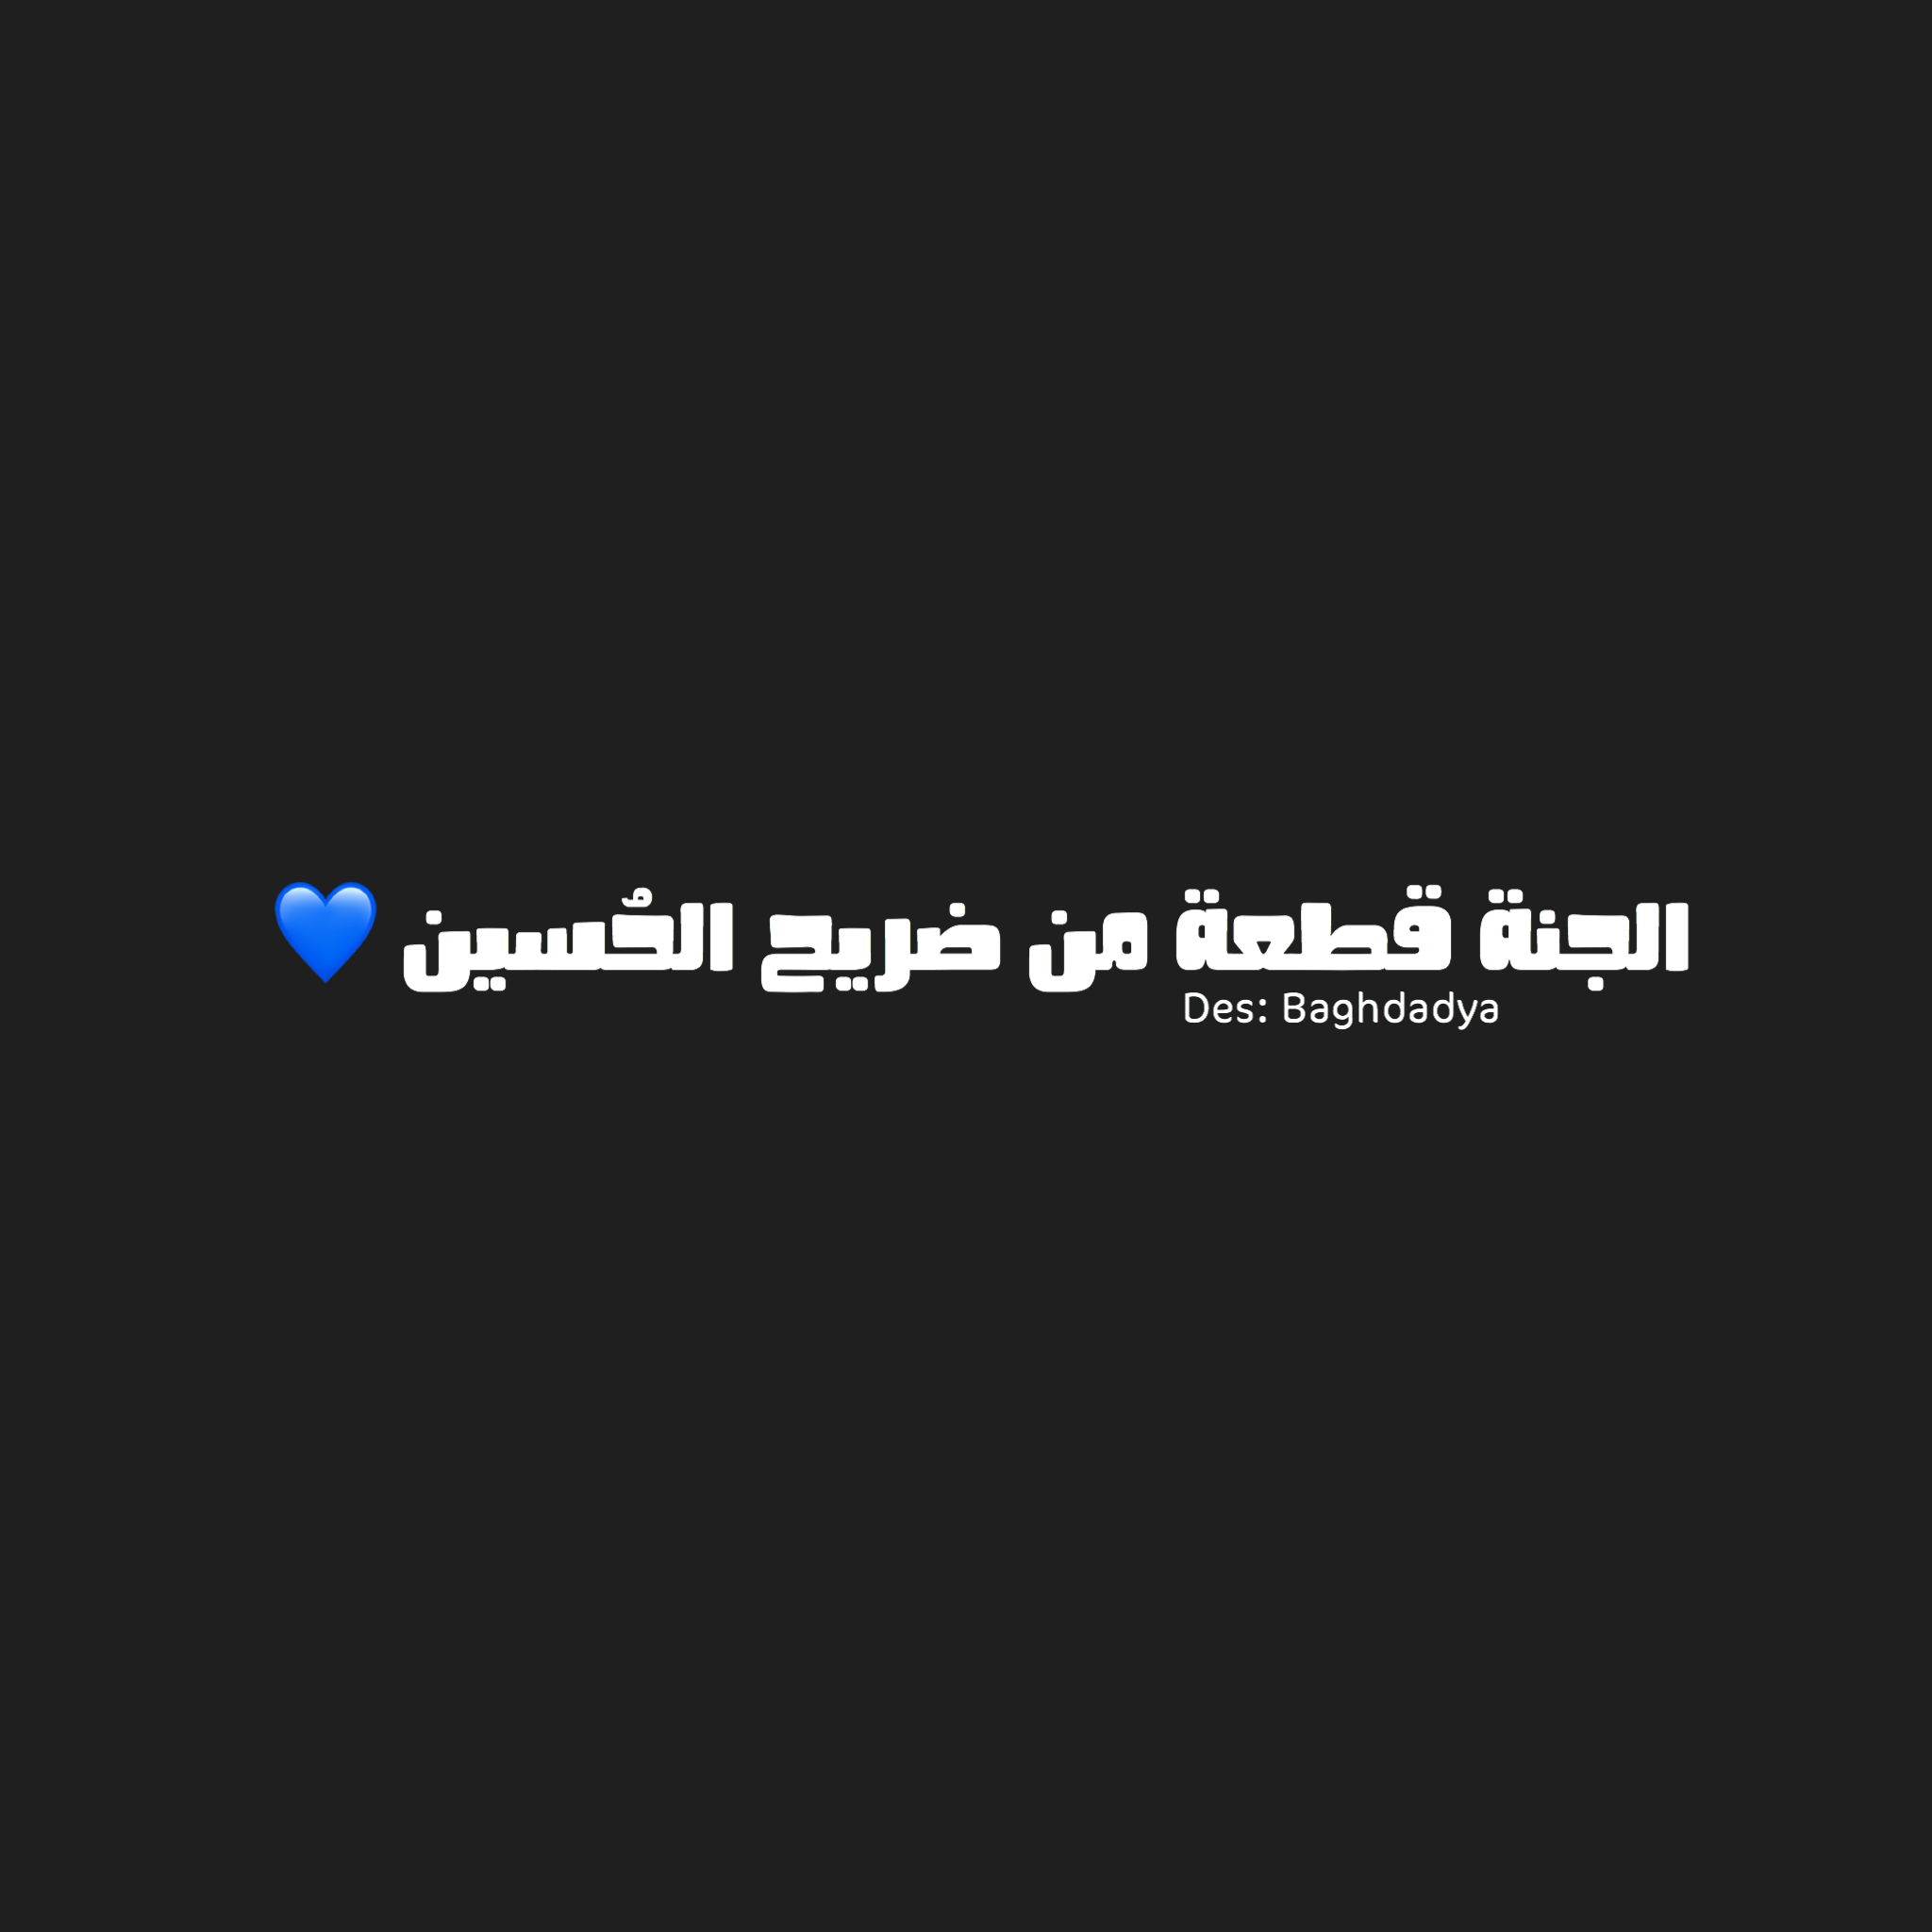 Pin By گرزآيهہ On رمزيات Arabic Love Quotes Love Quotes Quotes